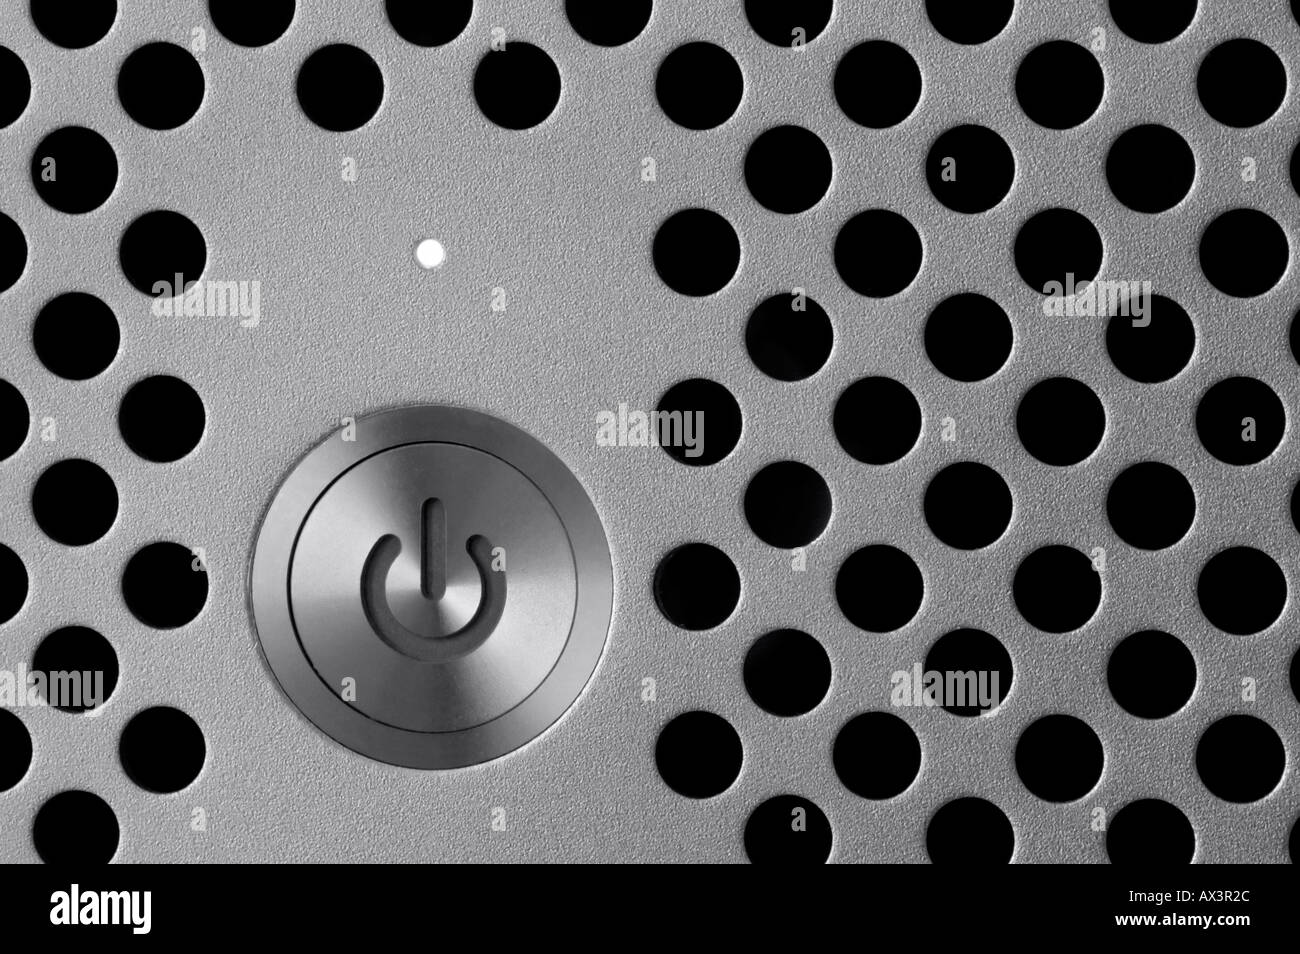 Close Up Of A Computer Power  Button / Switch. Black & White. - Stock Image